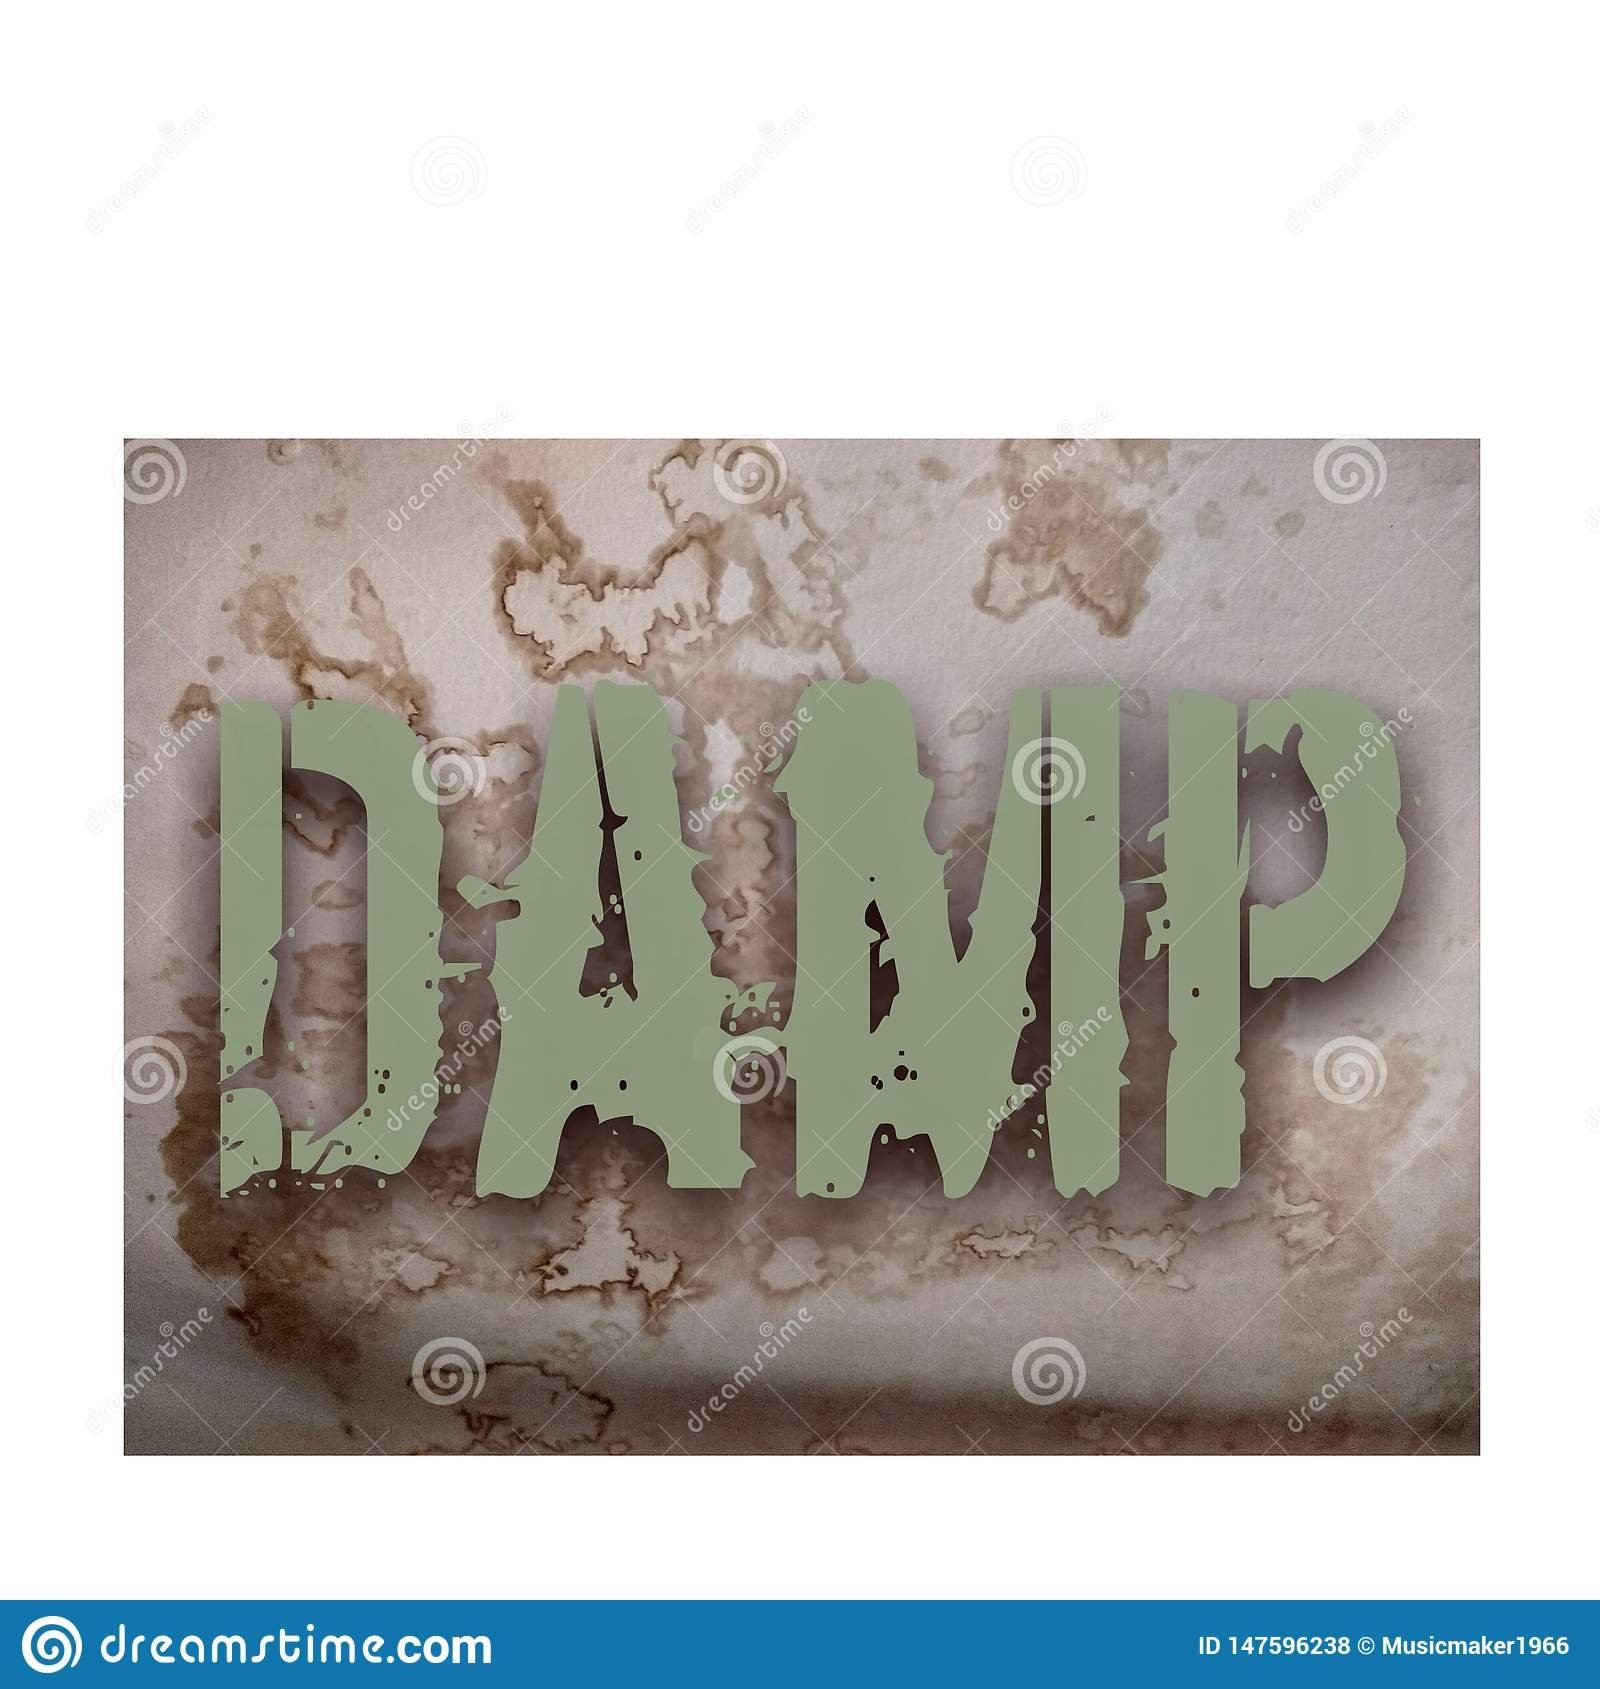 Damp patch background & damp word